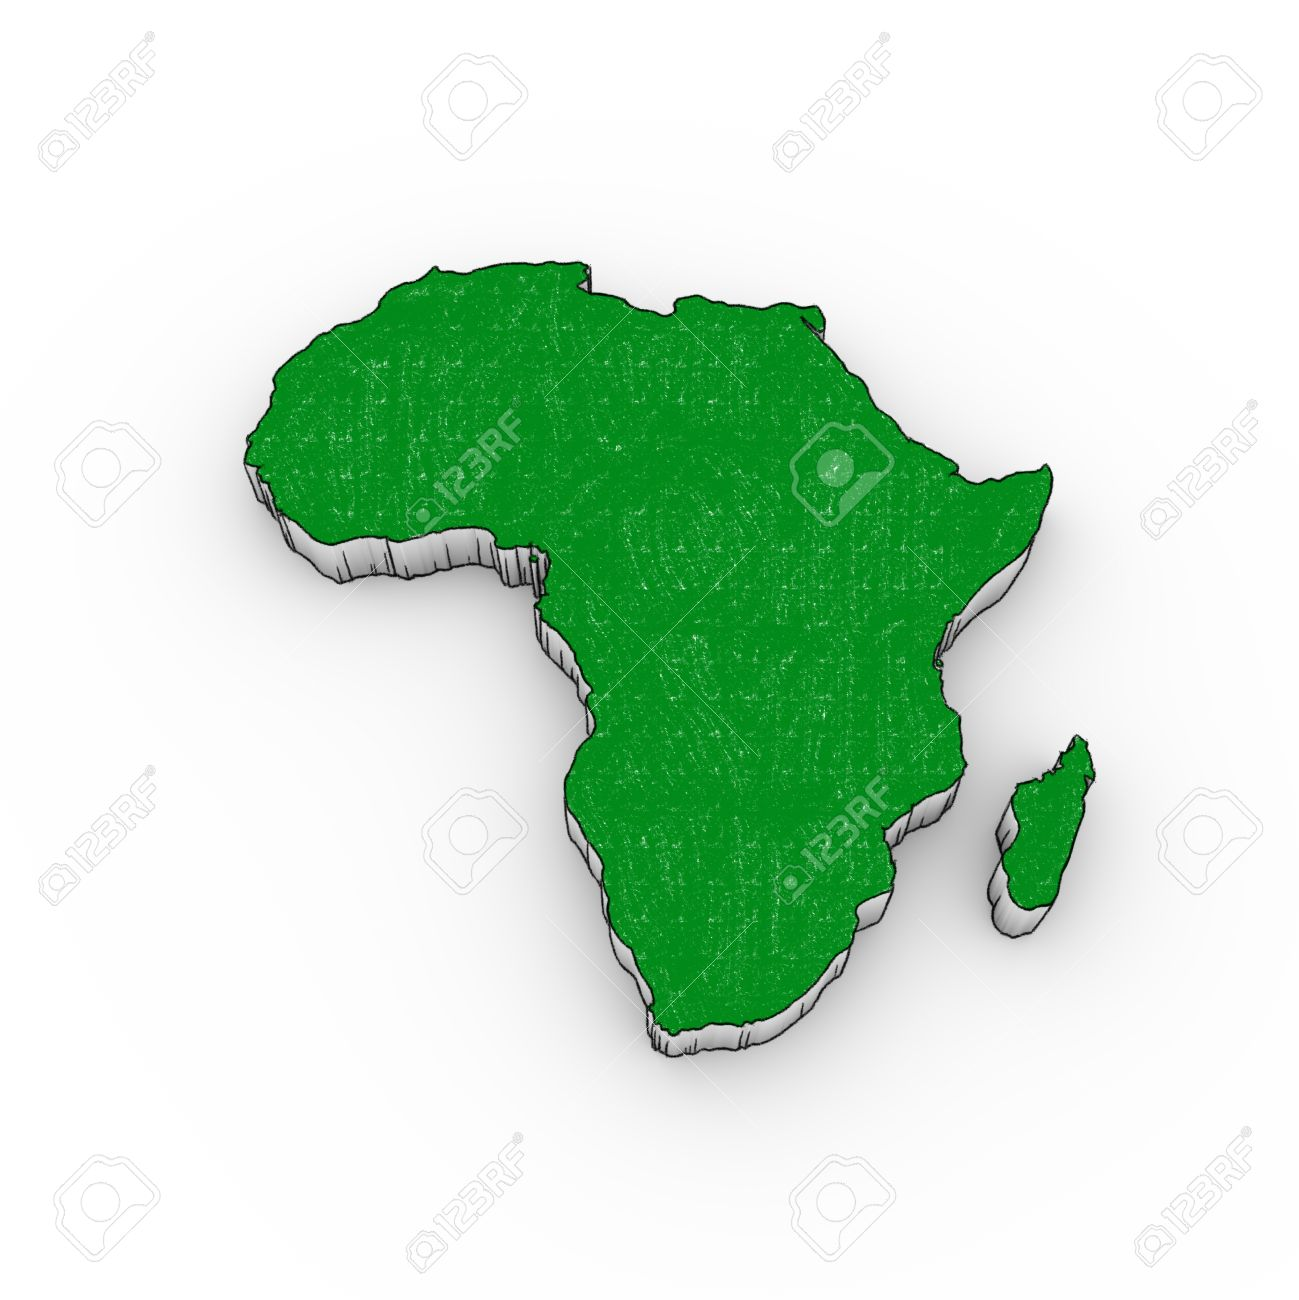 Africa Map 3d Looks Like A Drawing With Green Color Stock Photo